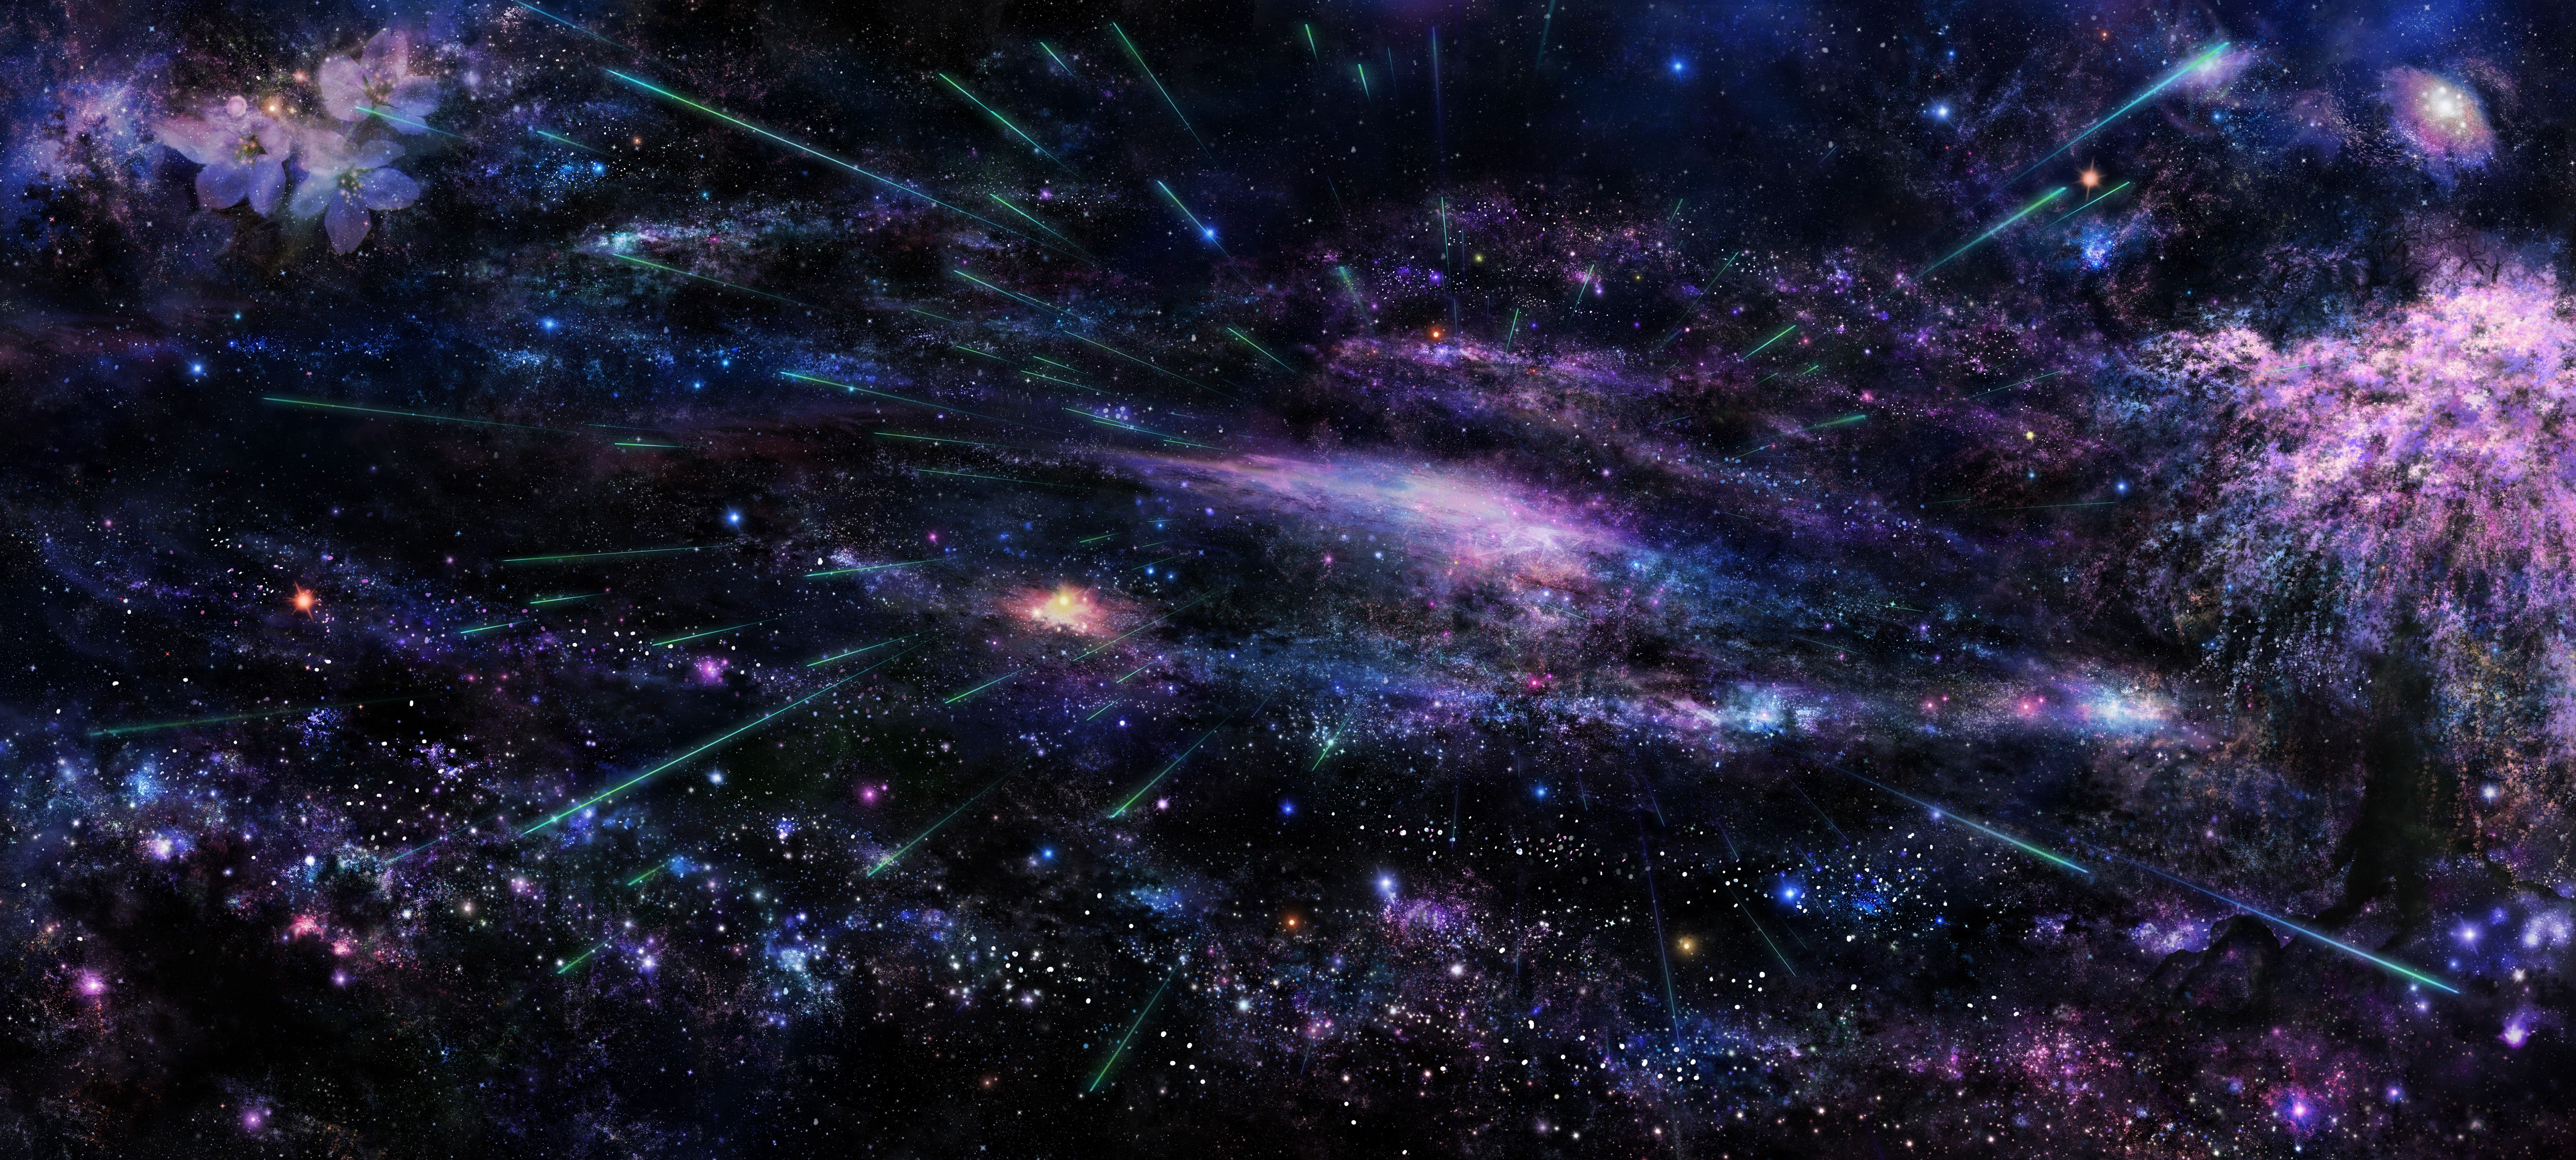 Beautiful Space Stars 5000x2252 Hd Space Wallpaper Space Background Hd Wallpaper